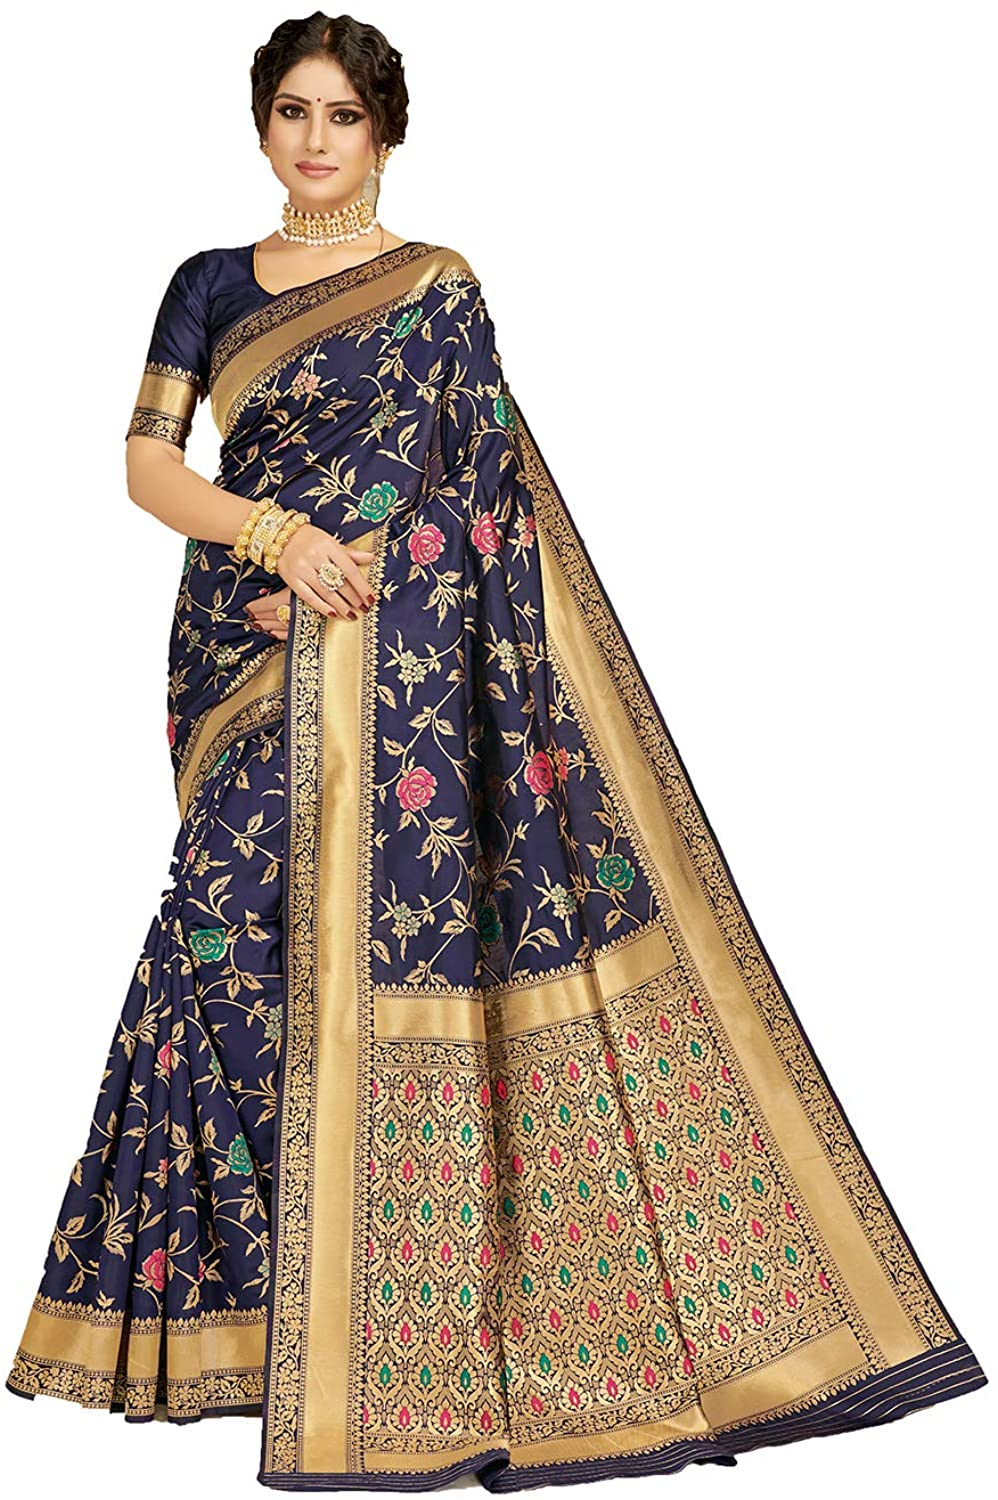 Saree for Women Bollywood Wedding Designer Nave Blue Sari with Unstitched Blouse.